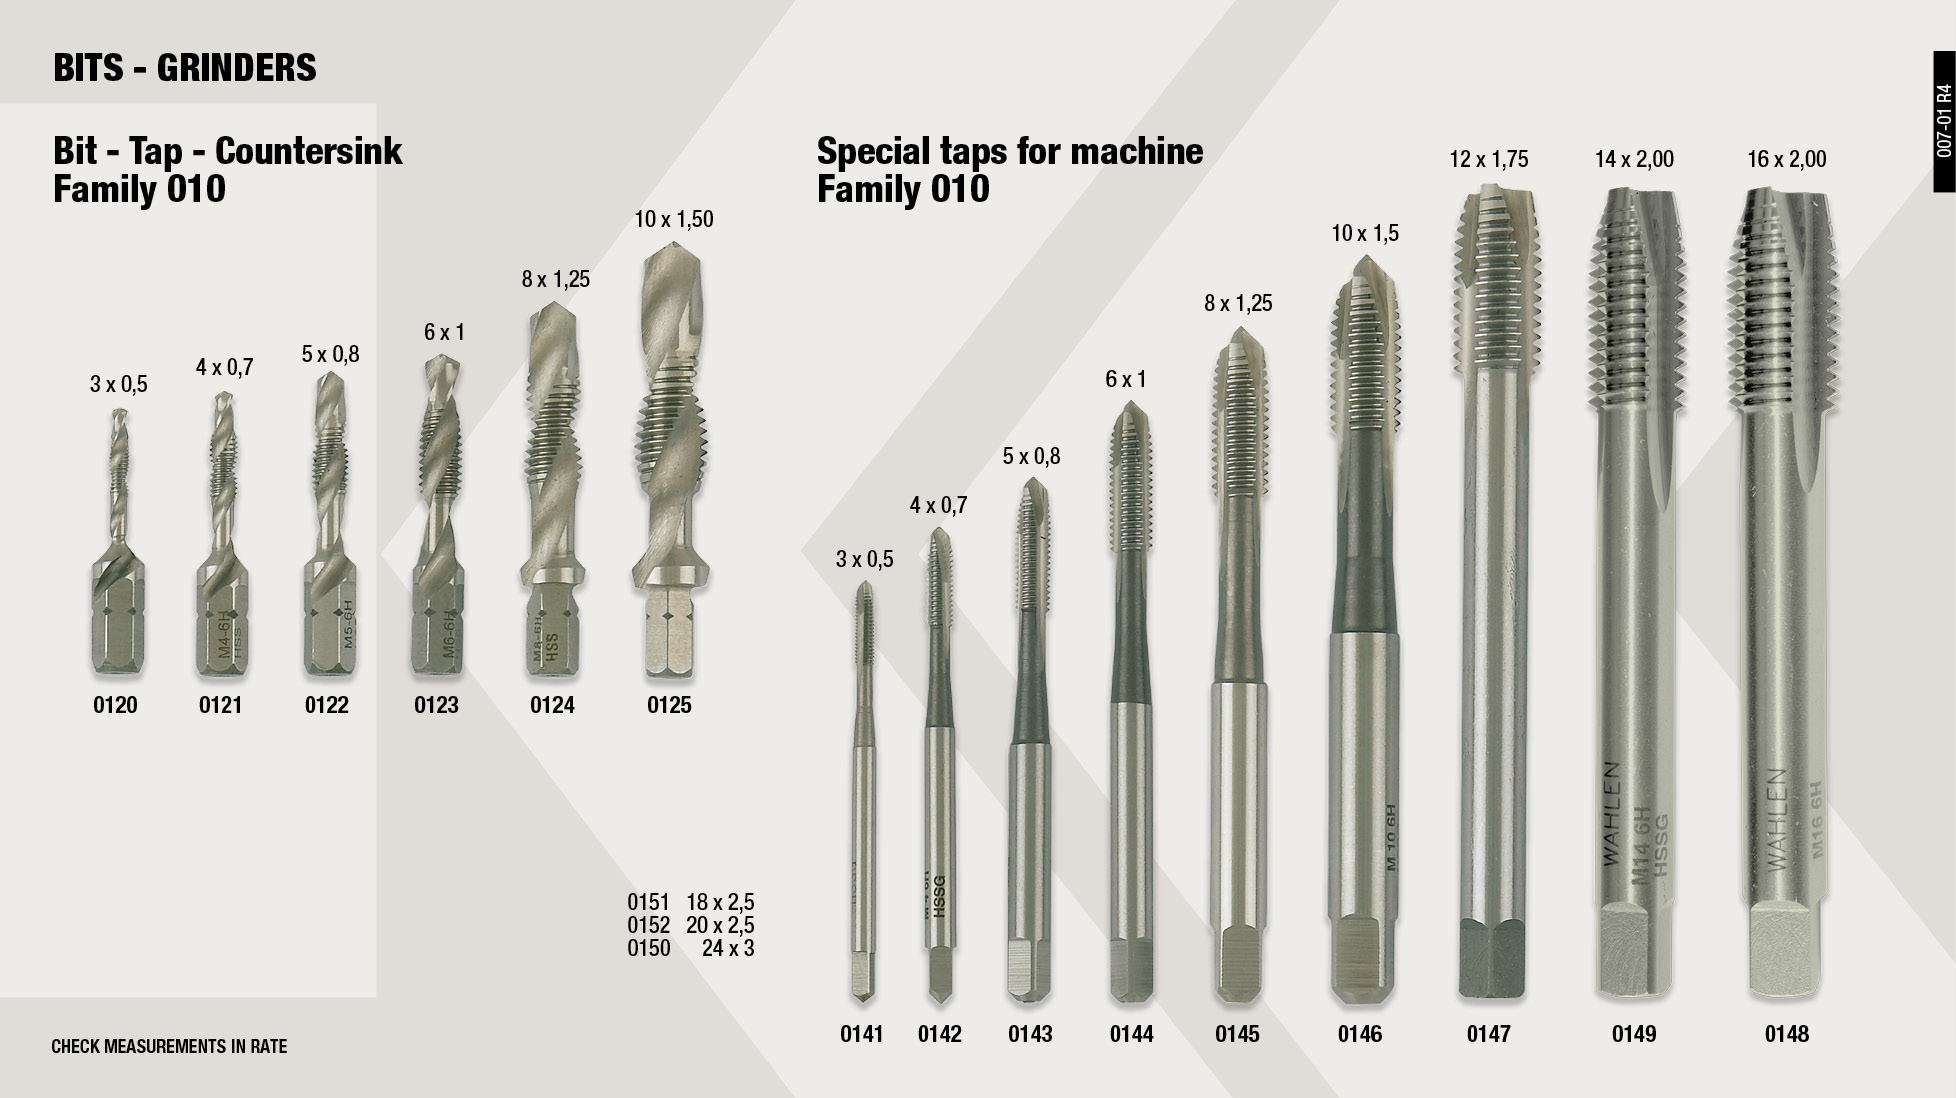 COMBI DRILL TAP BIT 8X1.25                                  ,  SPECIAL TAP FOR MACHINE 6X1                                 ,  SPECIAL TAP FOR MACHINE 16X2                                ,  COMBI DRILL TAP BIT 4X0.70                                  ,  COMBI DRILL TAP BIT 10X1.50                                 ,  SPECIAL TAP FOR MACHINE 8X1,25                              ,  COMBI DRILL TAP BIT 3X0.50                                  ,  SPECIAL TAP FOR MACHINE 3X0,50                              ,  SPECIAL TAP FOR MACHINE 14X2                                ,  COMBI DRILL TAP BIT 5X0.80                                  ,  COMBI DRILL TAP BIT 6X1.00                                  ,  SPECIAL TAP FOR MACHINE 5X0,80                              ,  SPECIAL TAP FOR MACHINE 10X1,5                              ,  SPECIAL TAP FOR MACHINE 4X70                                ,  SPECIAL TAP FOR MACHINE 12X1,75                             ,